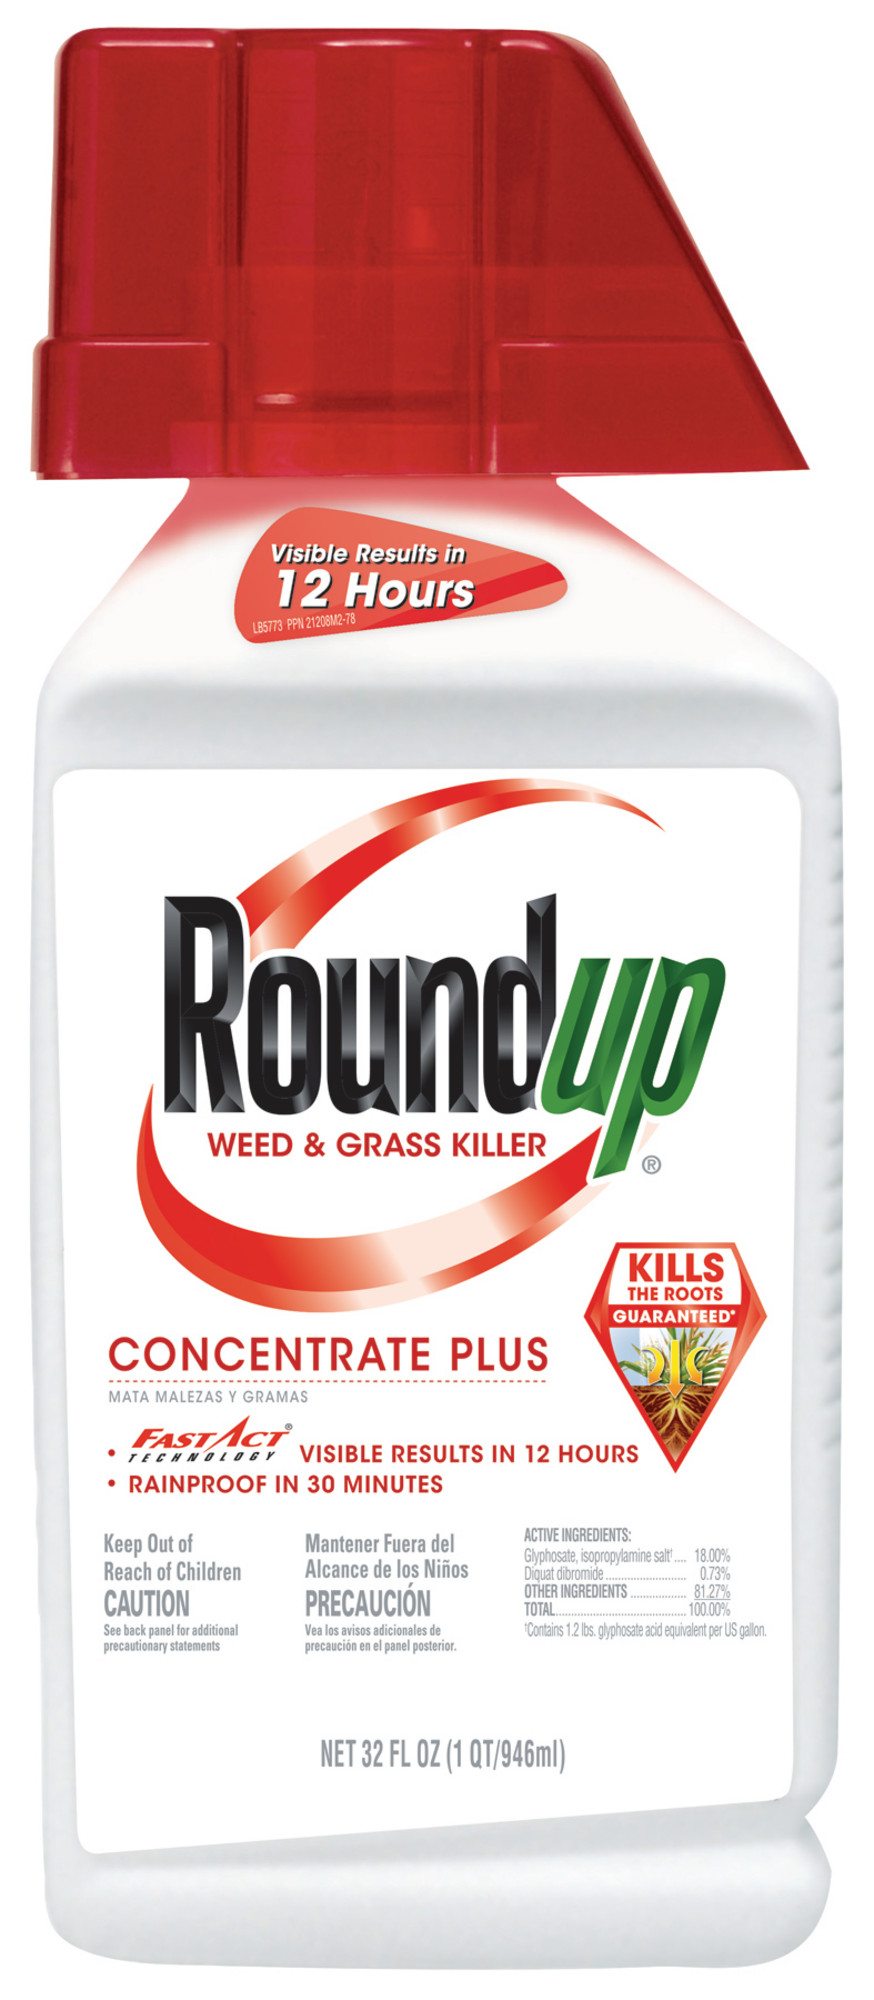 Concentrated Weed Grass Killer Roundup Weed Grass Killer Concentrate Plus Roundup